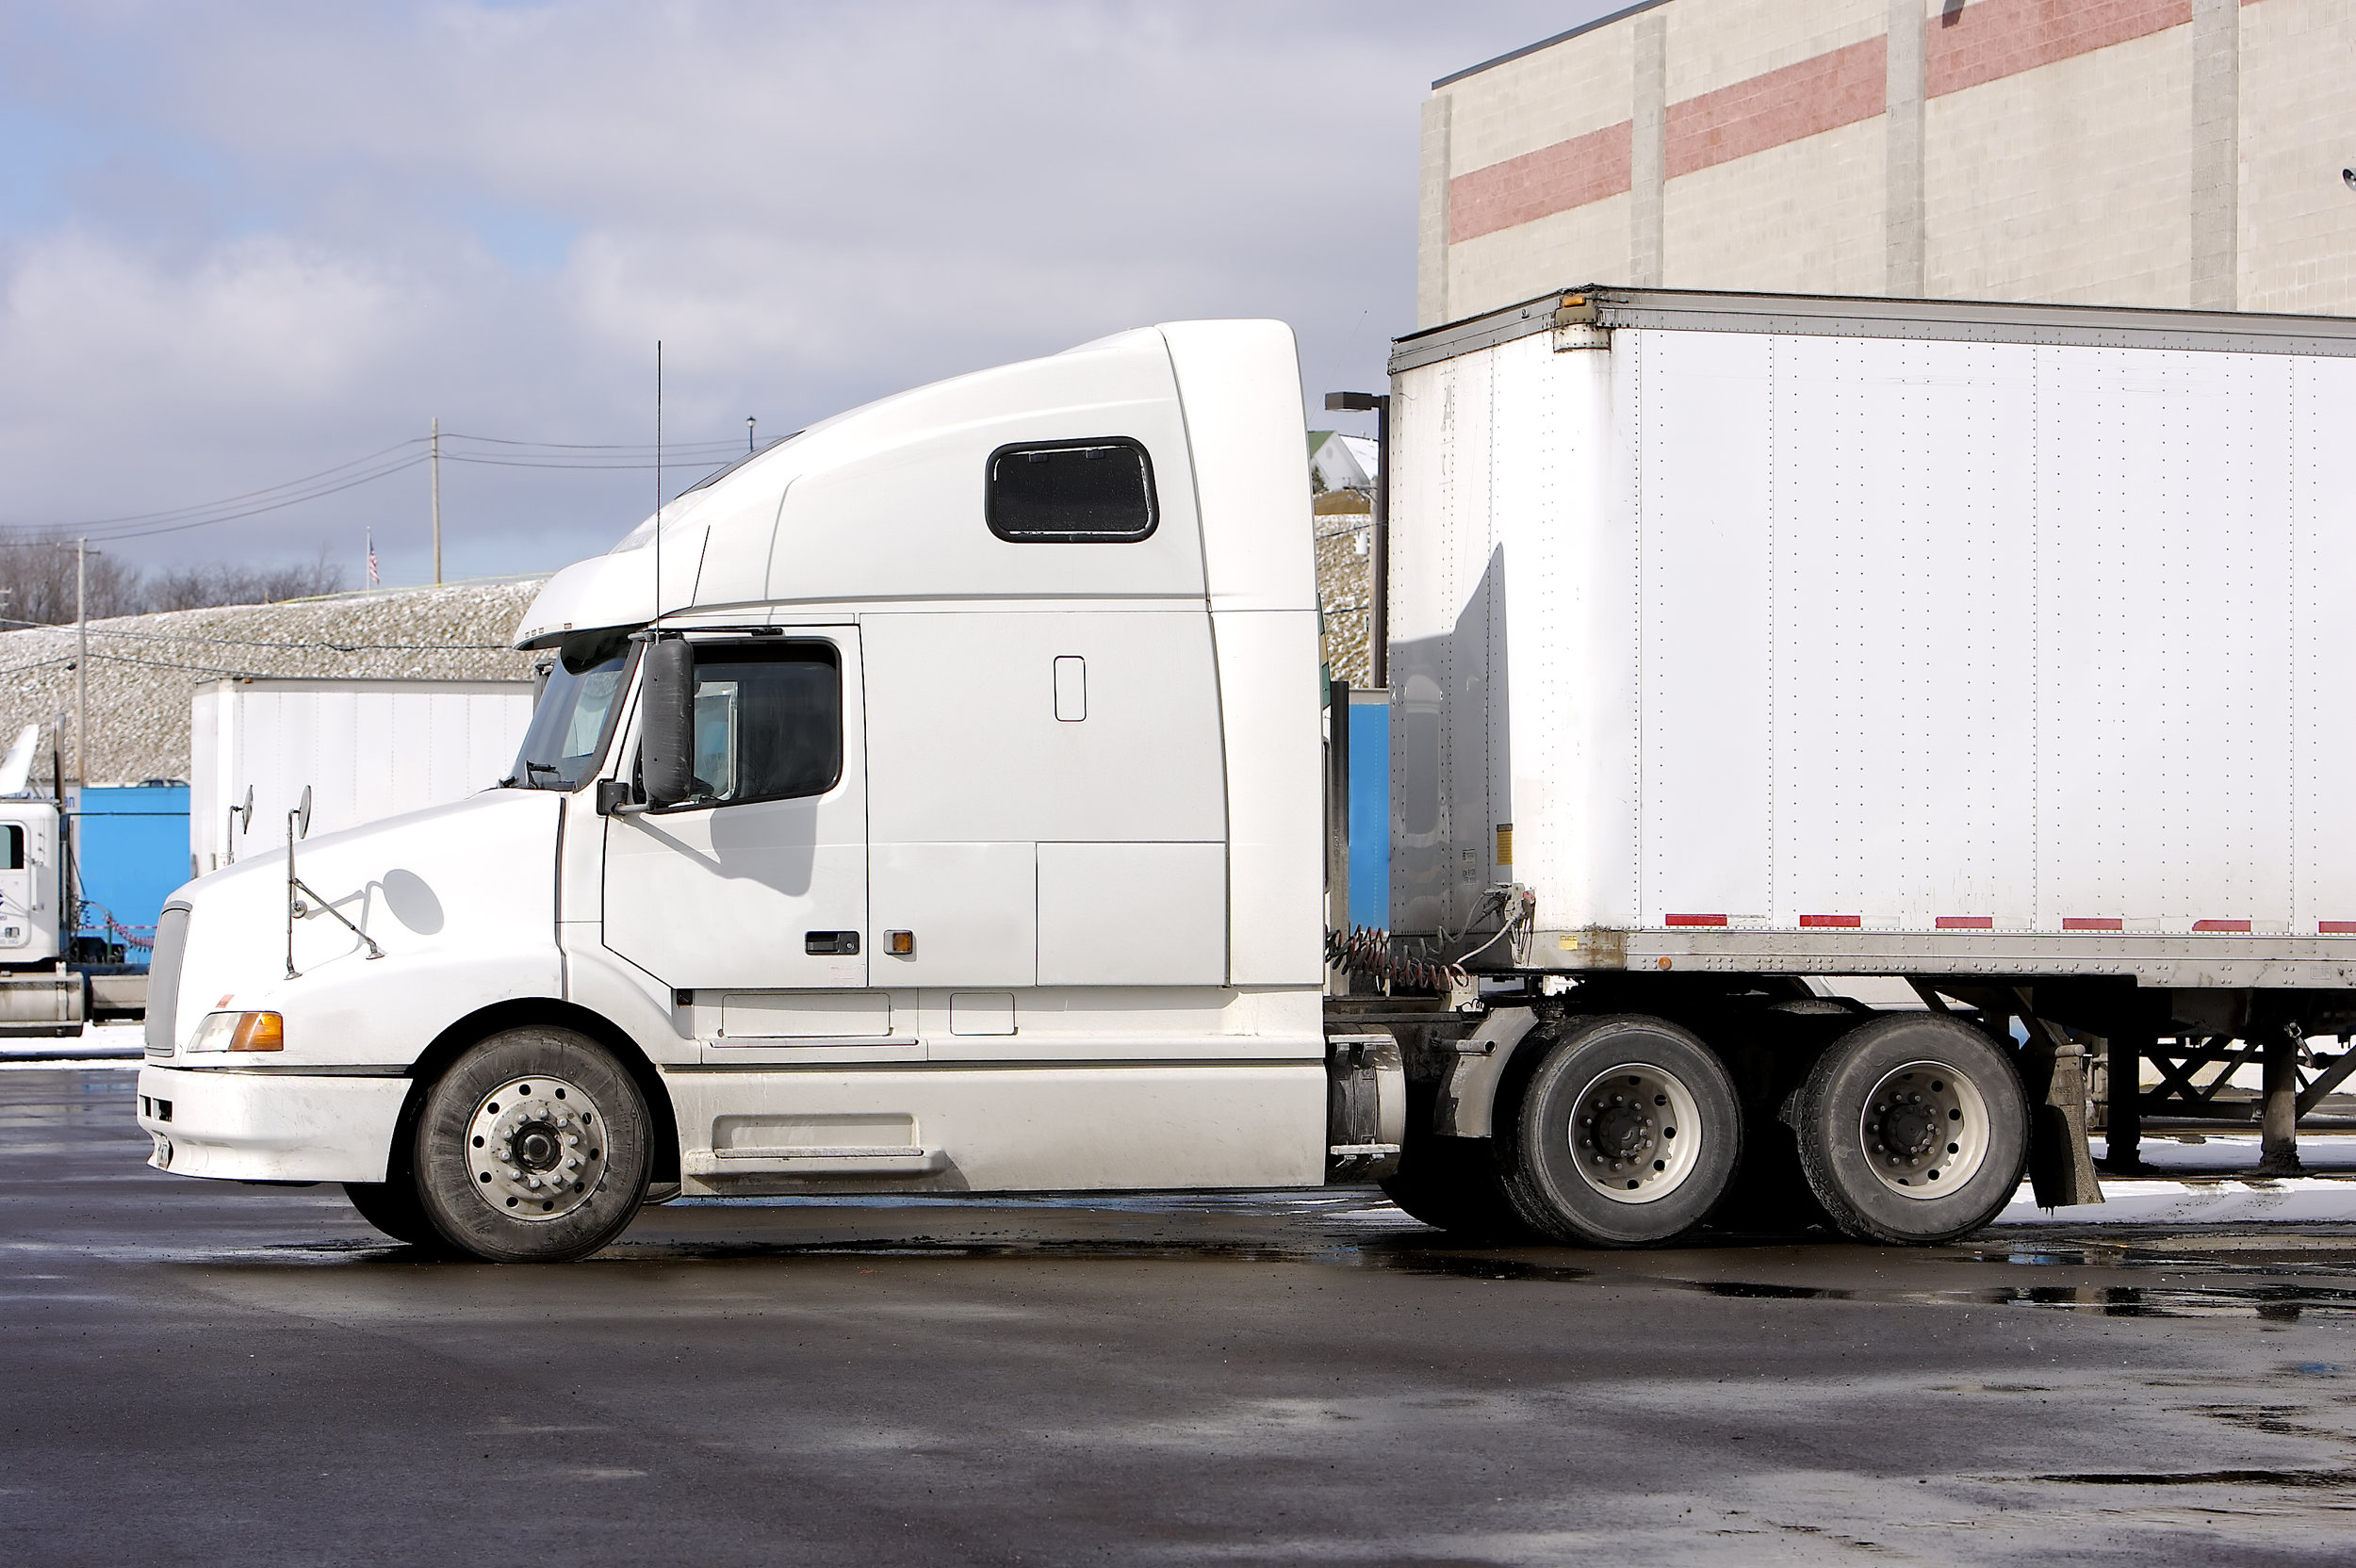 The ATRI survey found that truckers are spending more time waiting at the loading dock, leading to delays that cut into earnings of trucking companies and drivers.